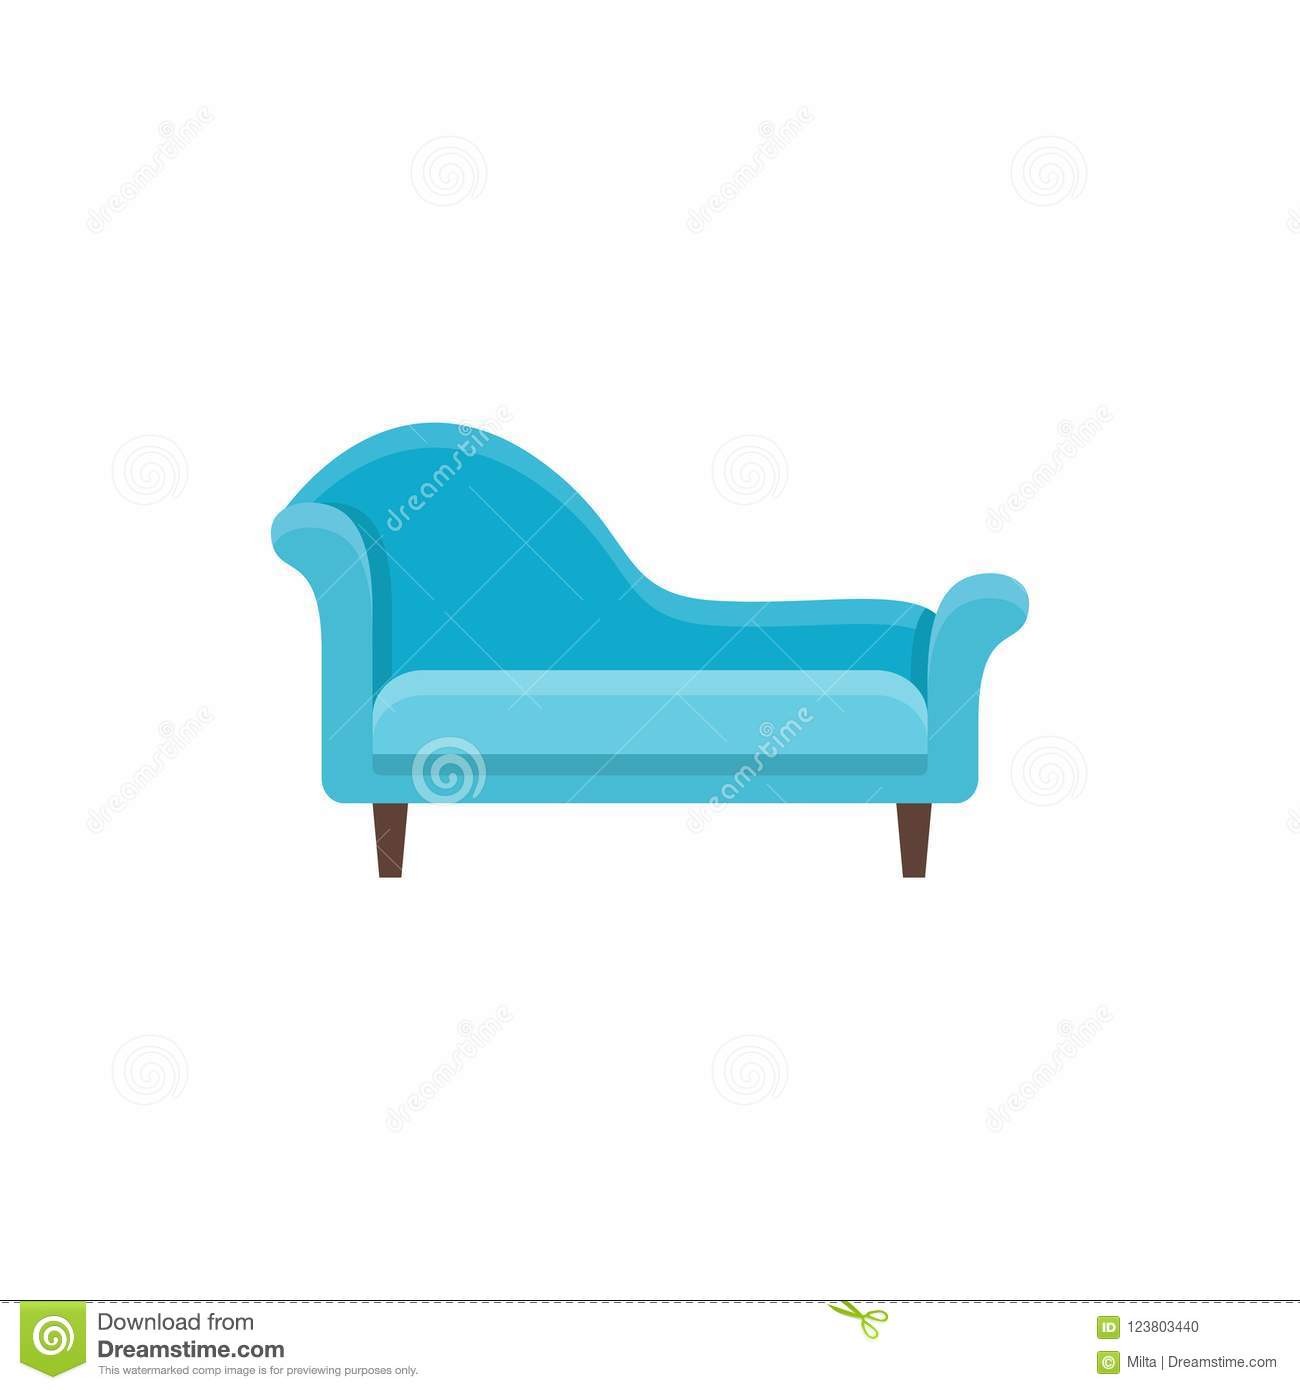 Blue Chaise Lounge Sofa Vector Illustration Flat Icon Of Settee Front View Stock Vector Illustration Of Couch Home 123803440